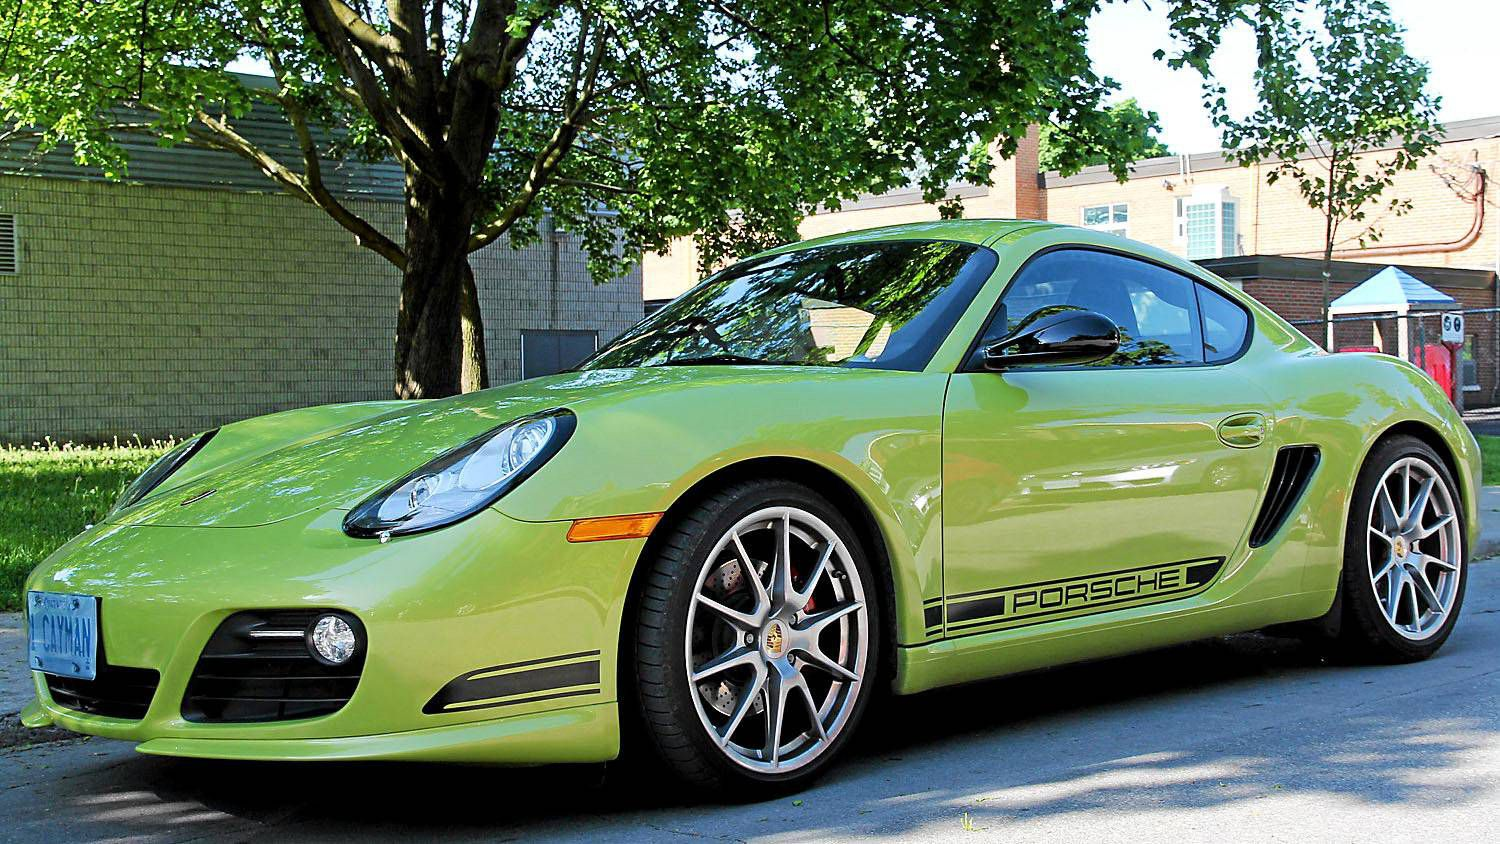 8a8d73aabe3c Why his Honda is better than a Porsche - The Globe and Mail